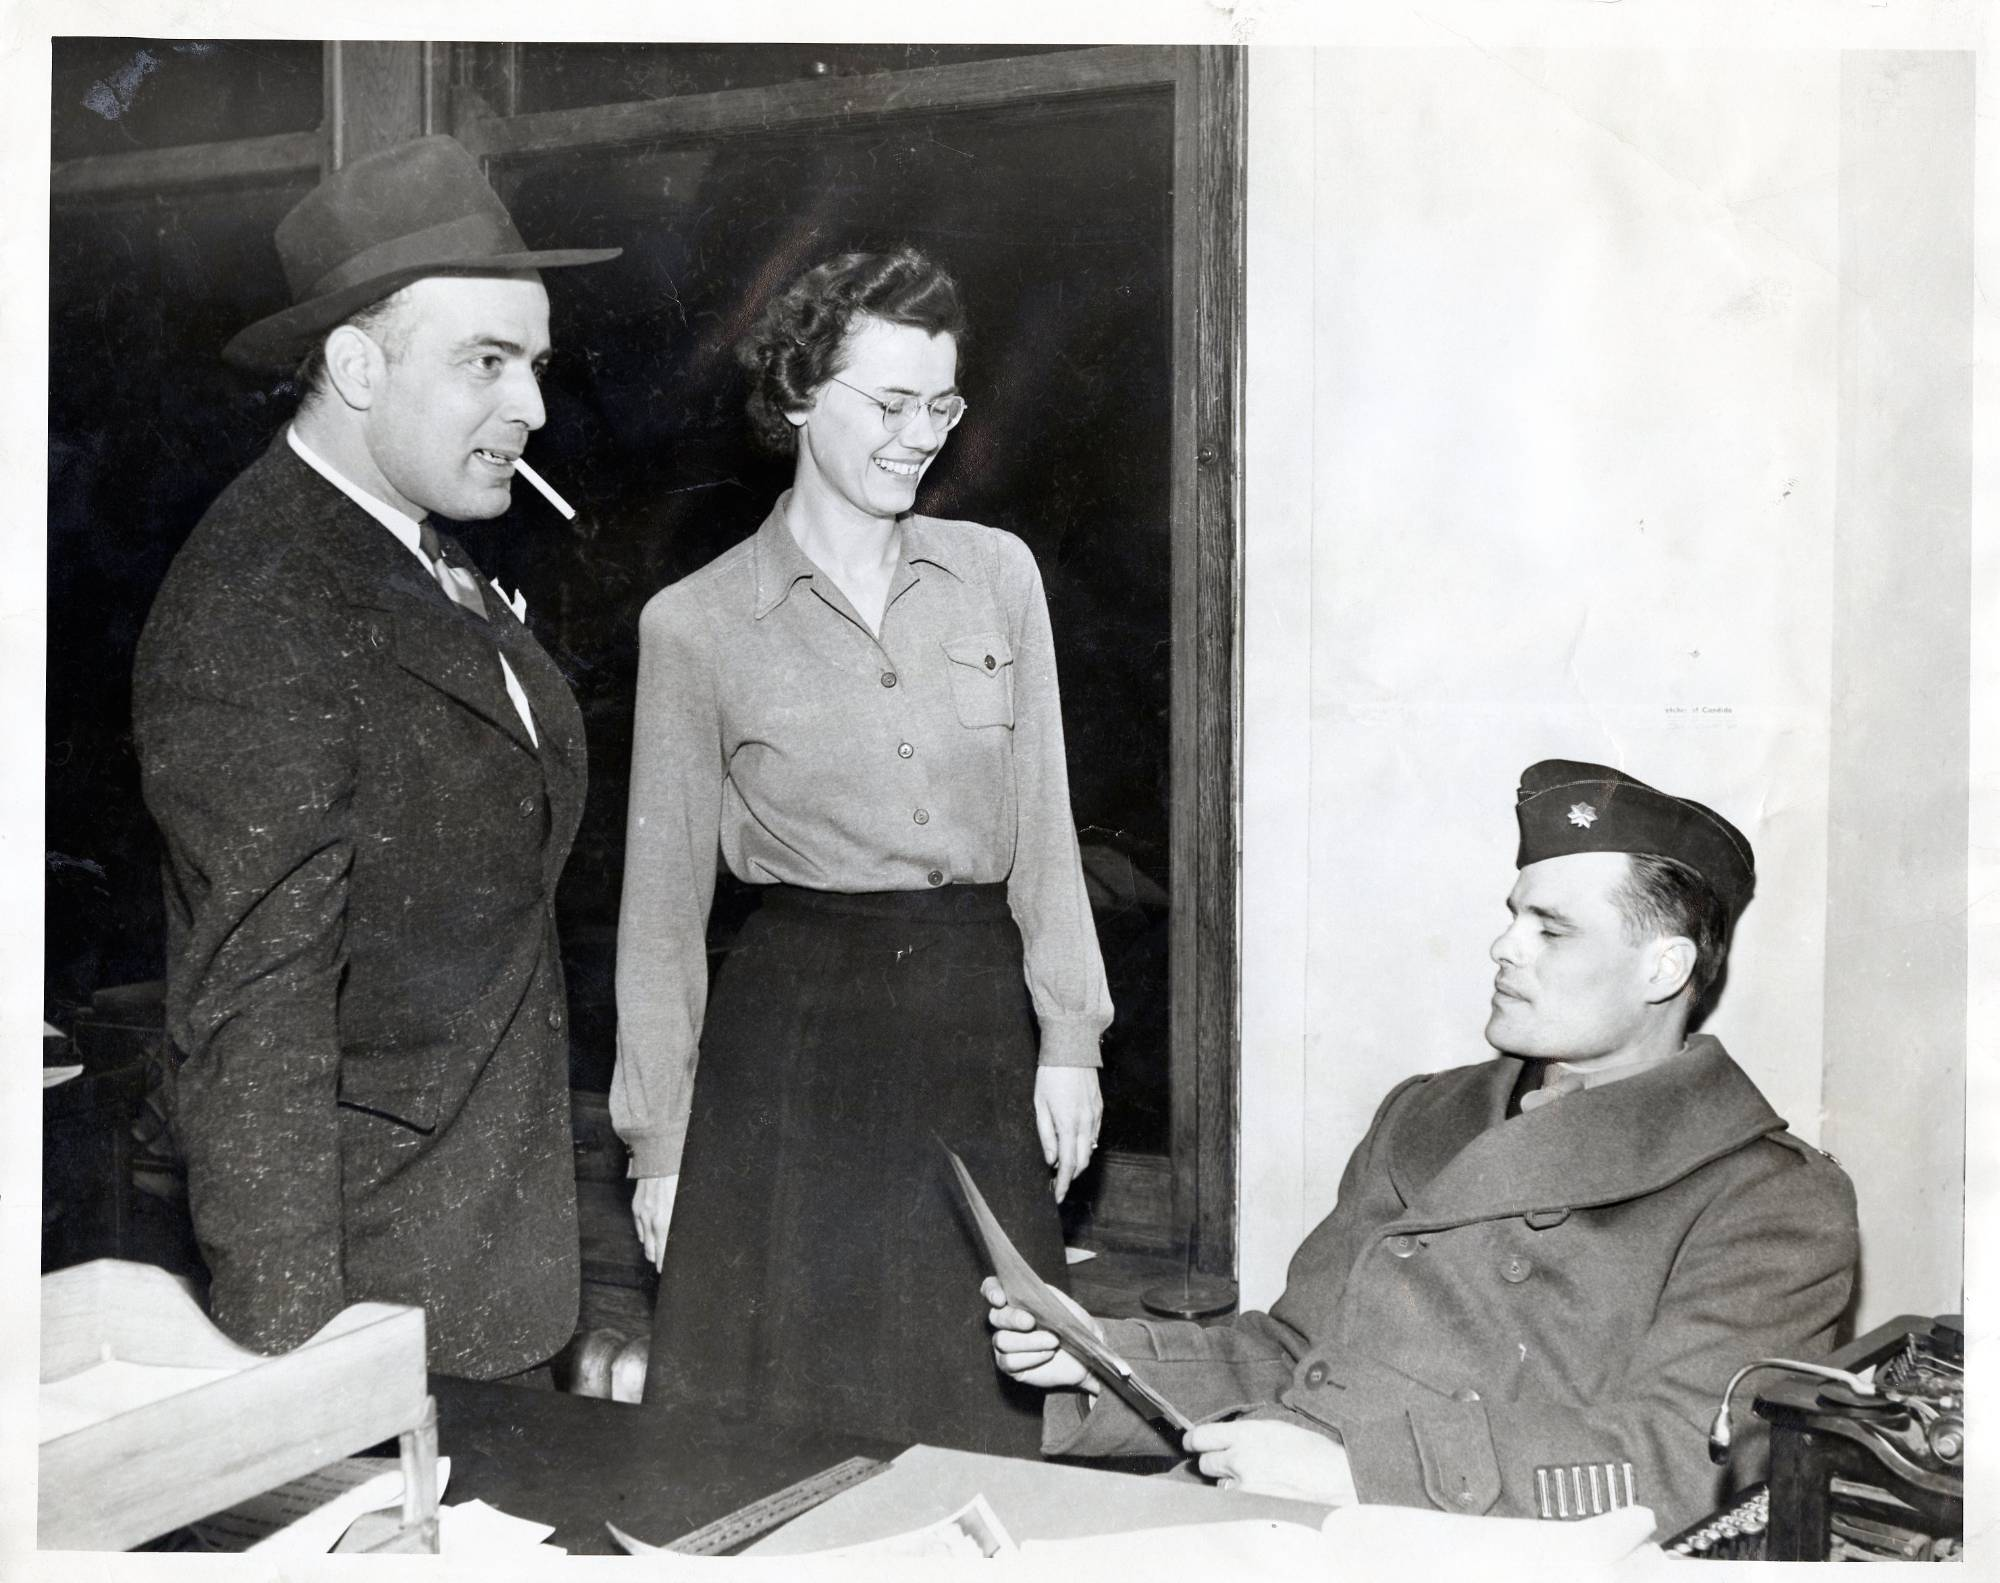 Ralph Hauenstein working with a female and a male military personal